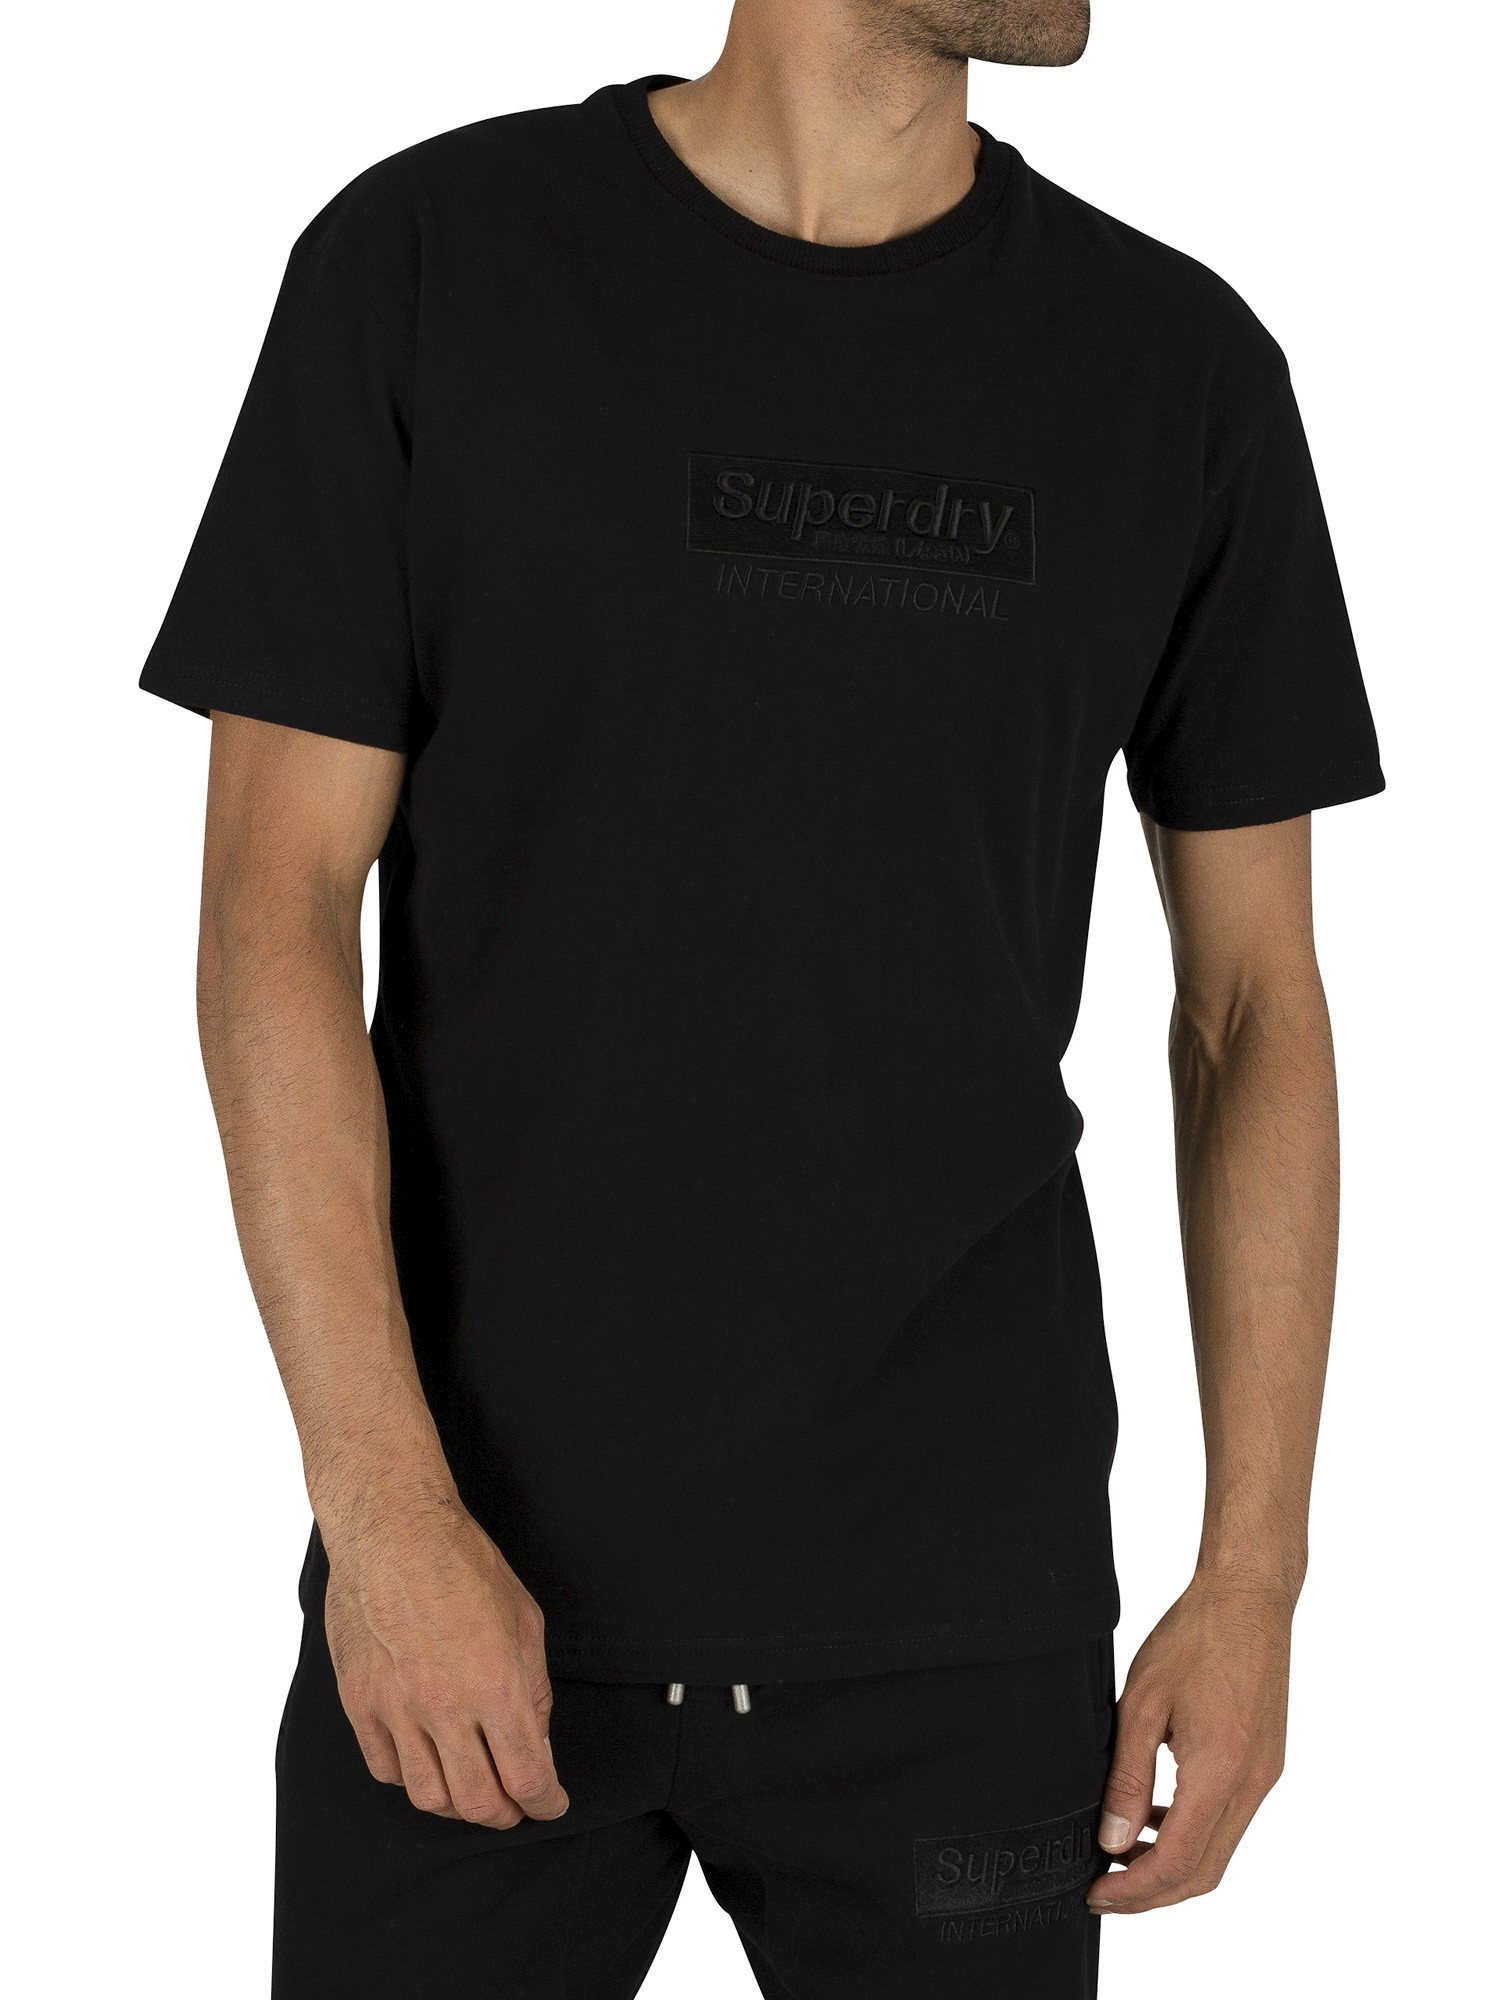 Superdry International Youth Box Fit T-Shirt - Black